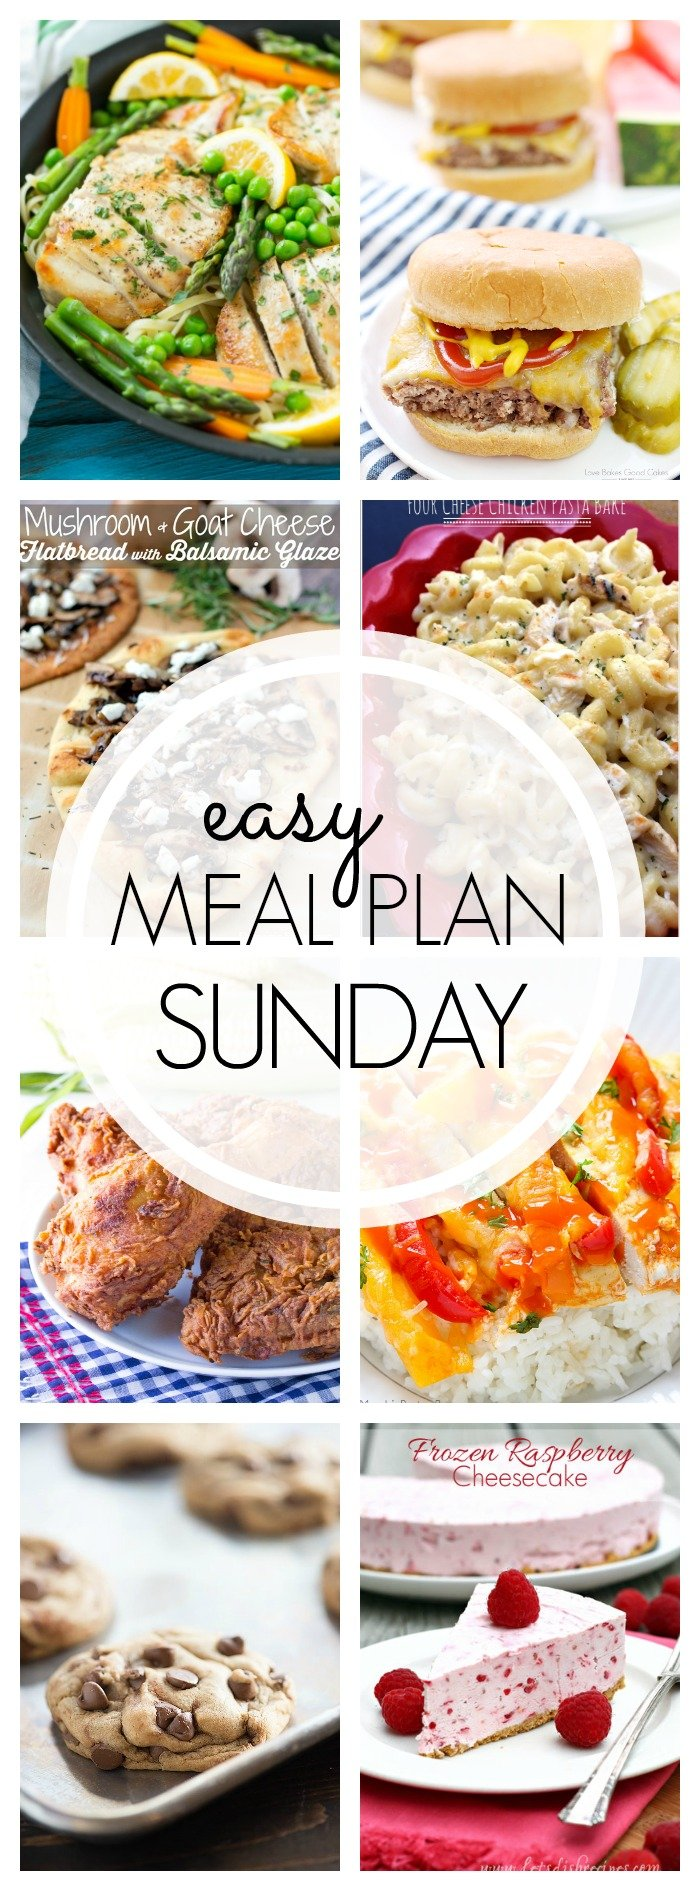 EASY MEAL PLAN – Week 54 - 7 delicious dinners and 2 desserts!